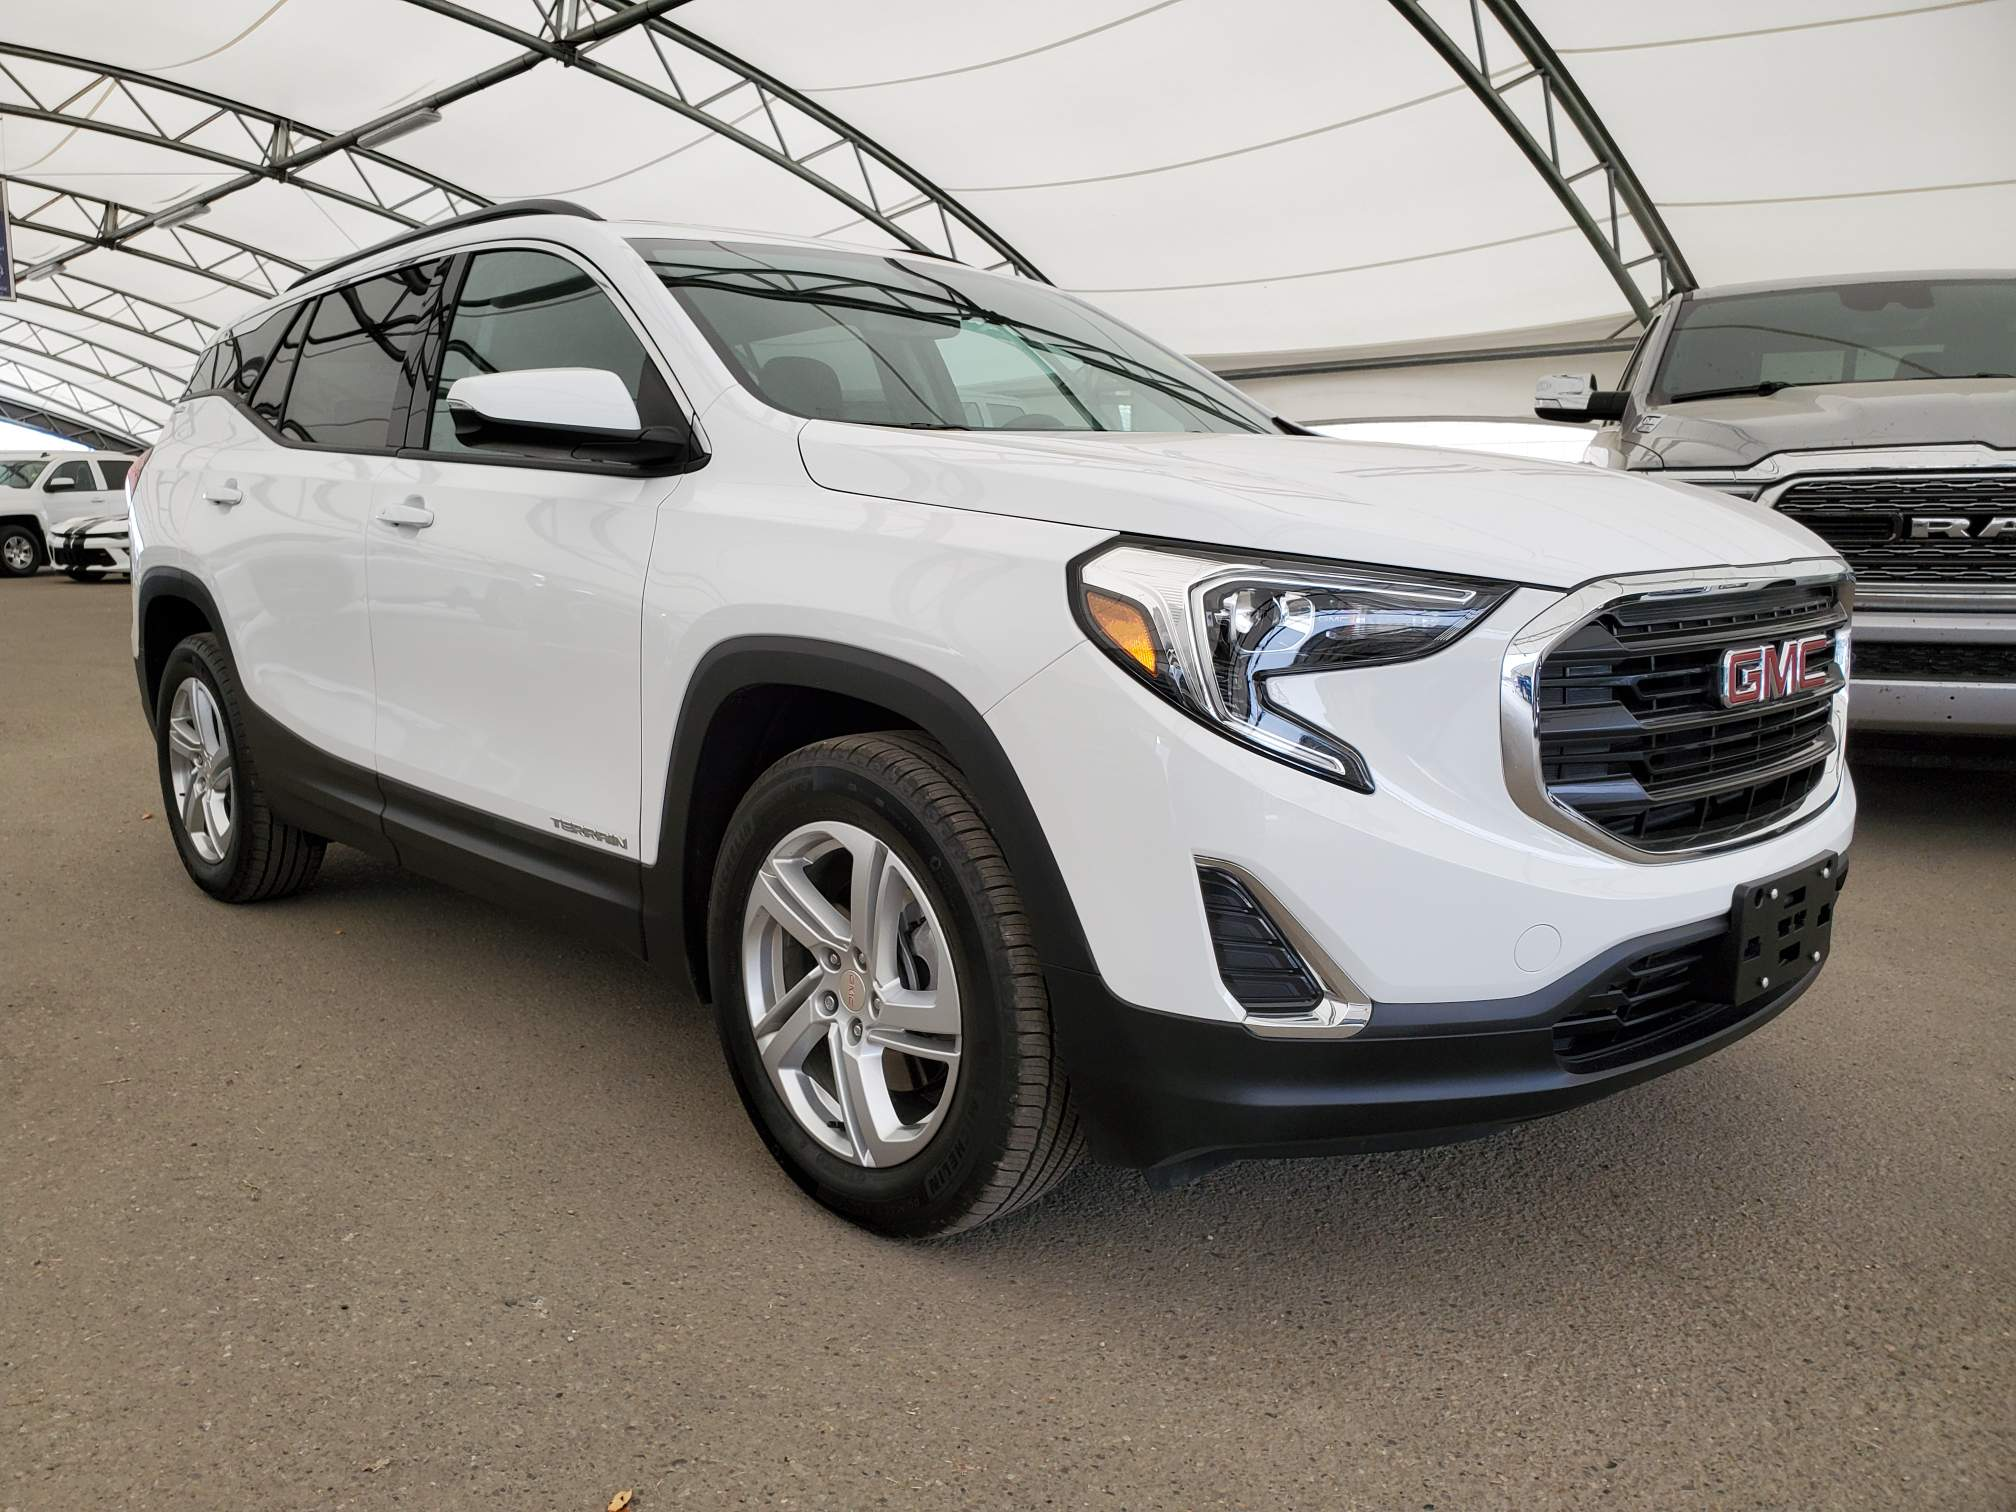 used 2020 GMC Terrain car, priced at $32,504